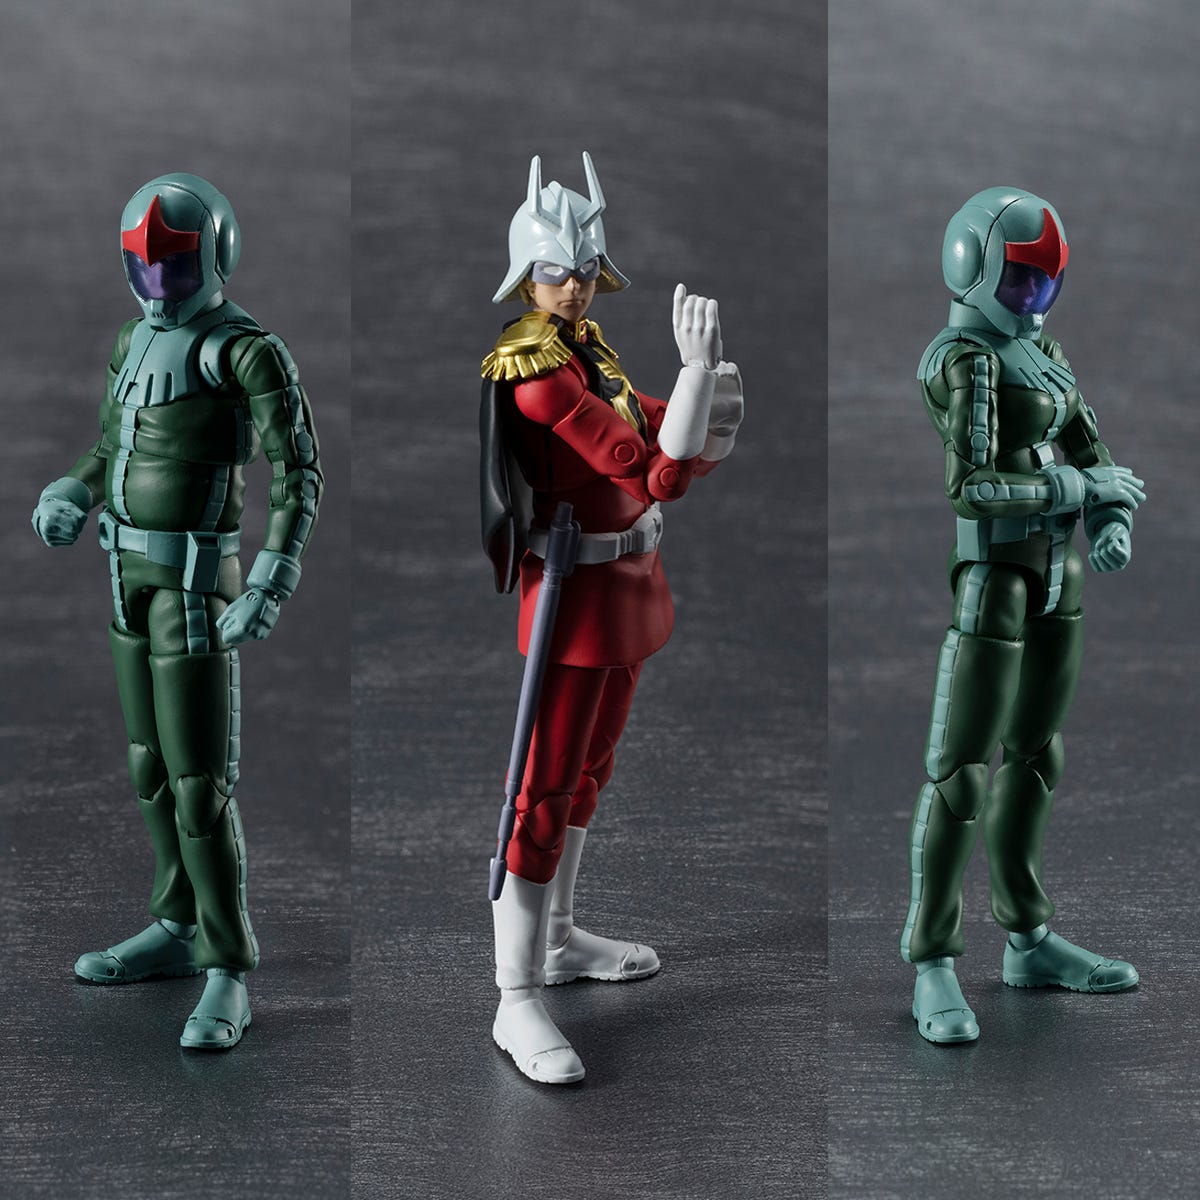 """Megahouse G.M.G Principality of Zeon Army Solider 04-06 (Normal Suit Solider & Char Aznable) """"Gundam"""""""